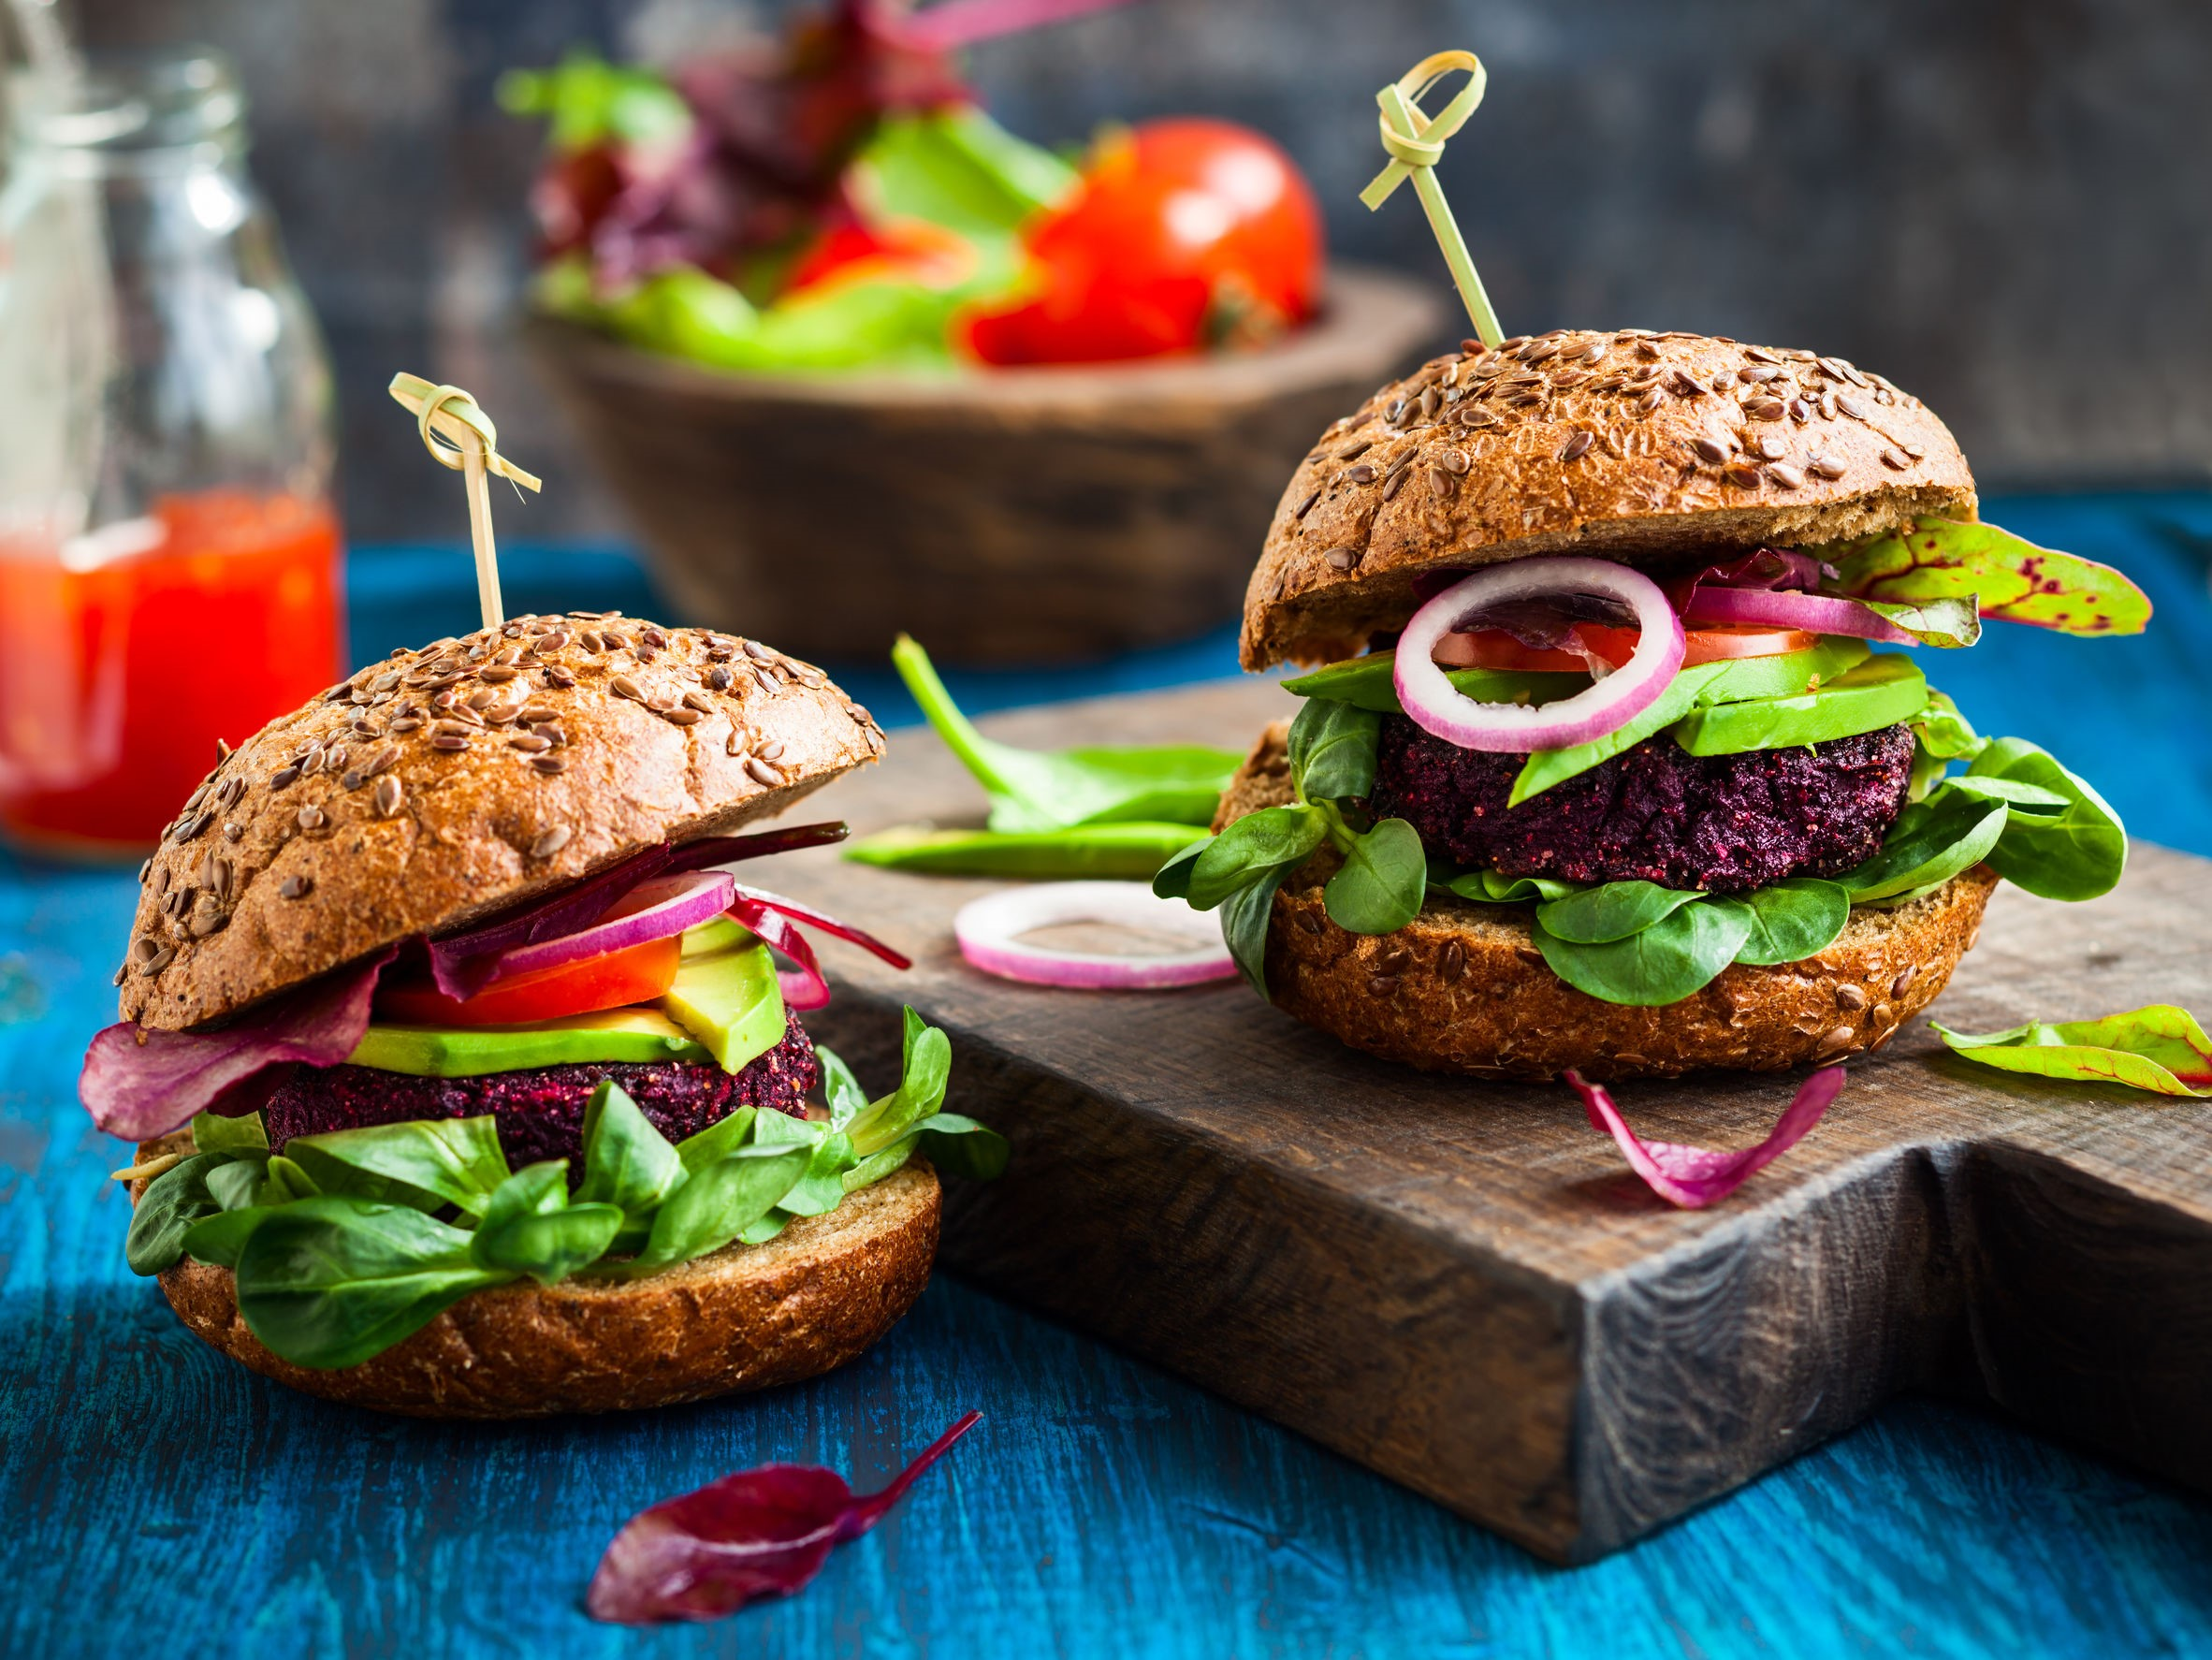 """Benefits of eating a plant-based diet """"Veganuary"""" for the rest of 2017"""